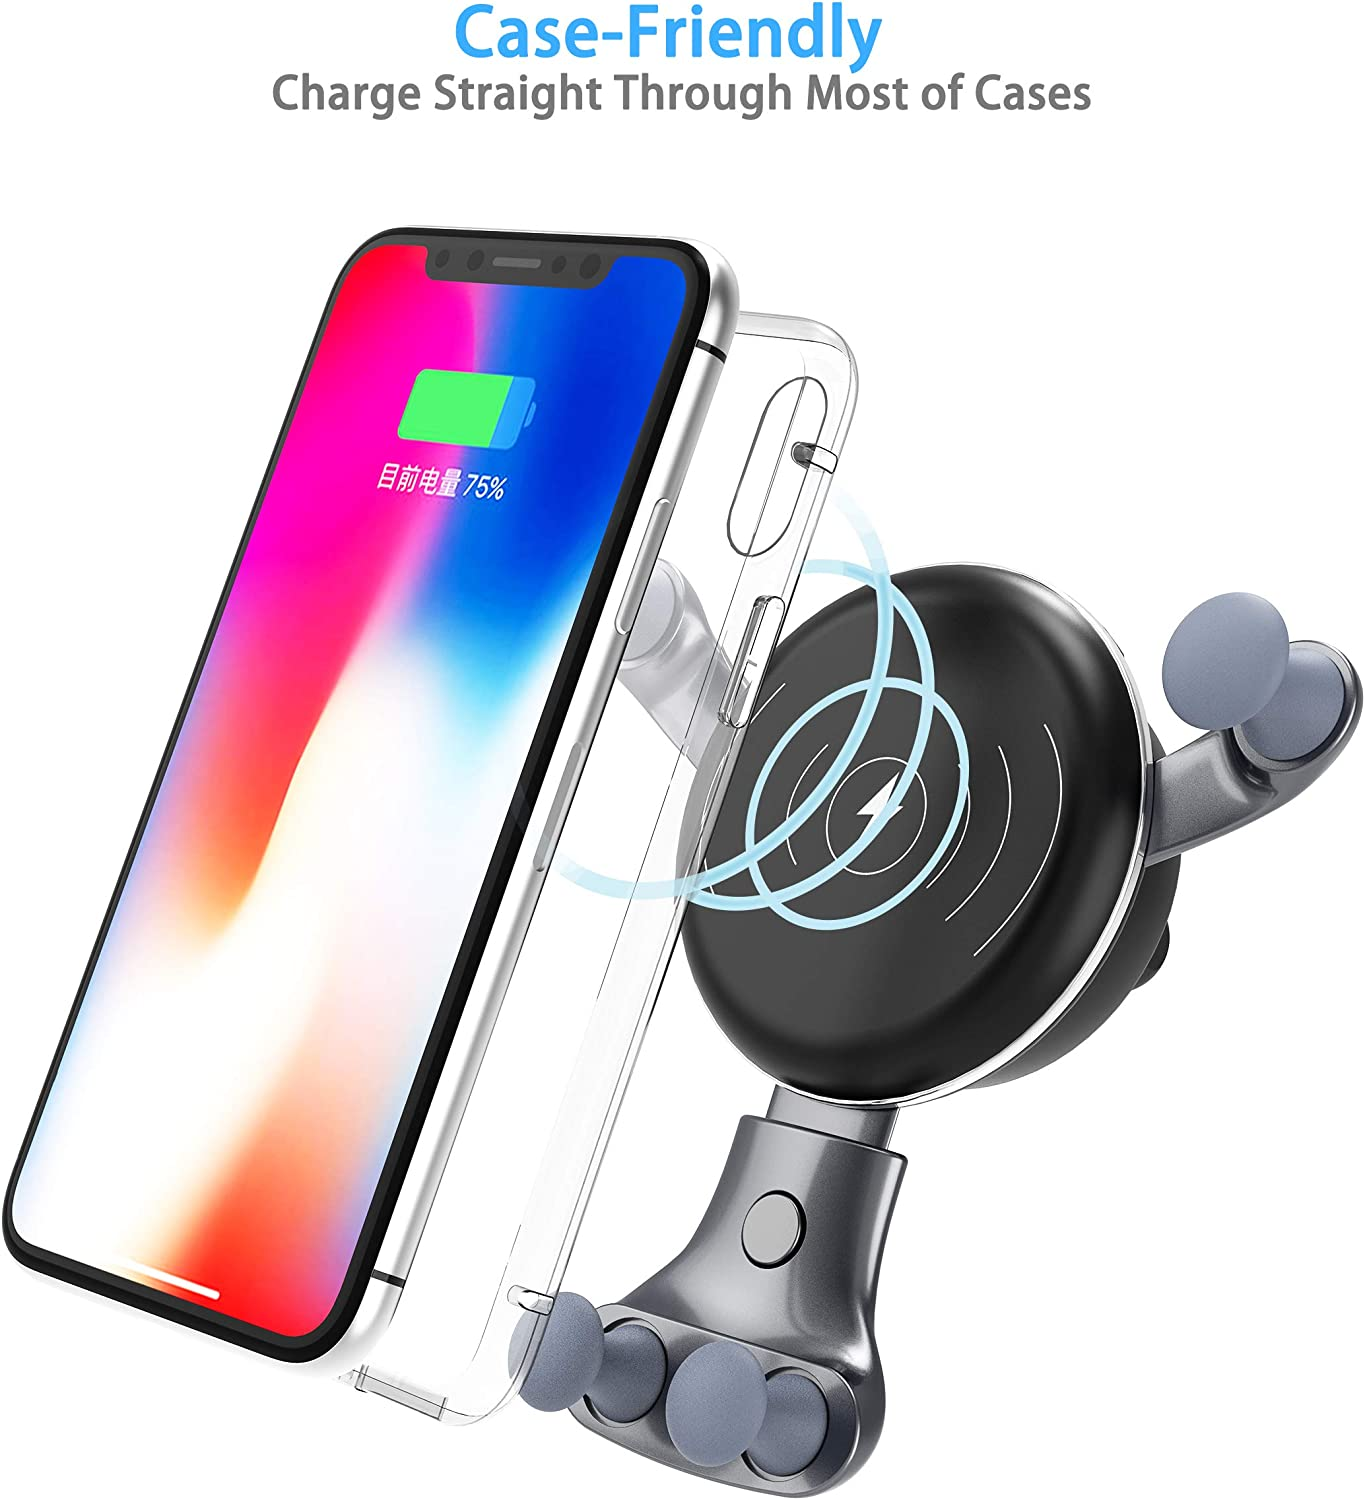 Wireless Car Charger Air Vent Phone Holder 7.5W Compatible for iPhone Xs Max//Xs//XR//X// 8//8+ 10W Compatible for Samsung Galaxy S9//S9+//S8//S8+//S10//S10+//Note 8//9 Fast Car Cradles Mount